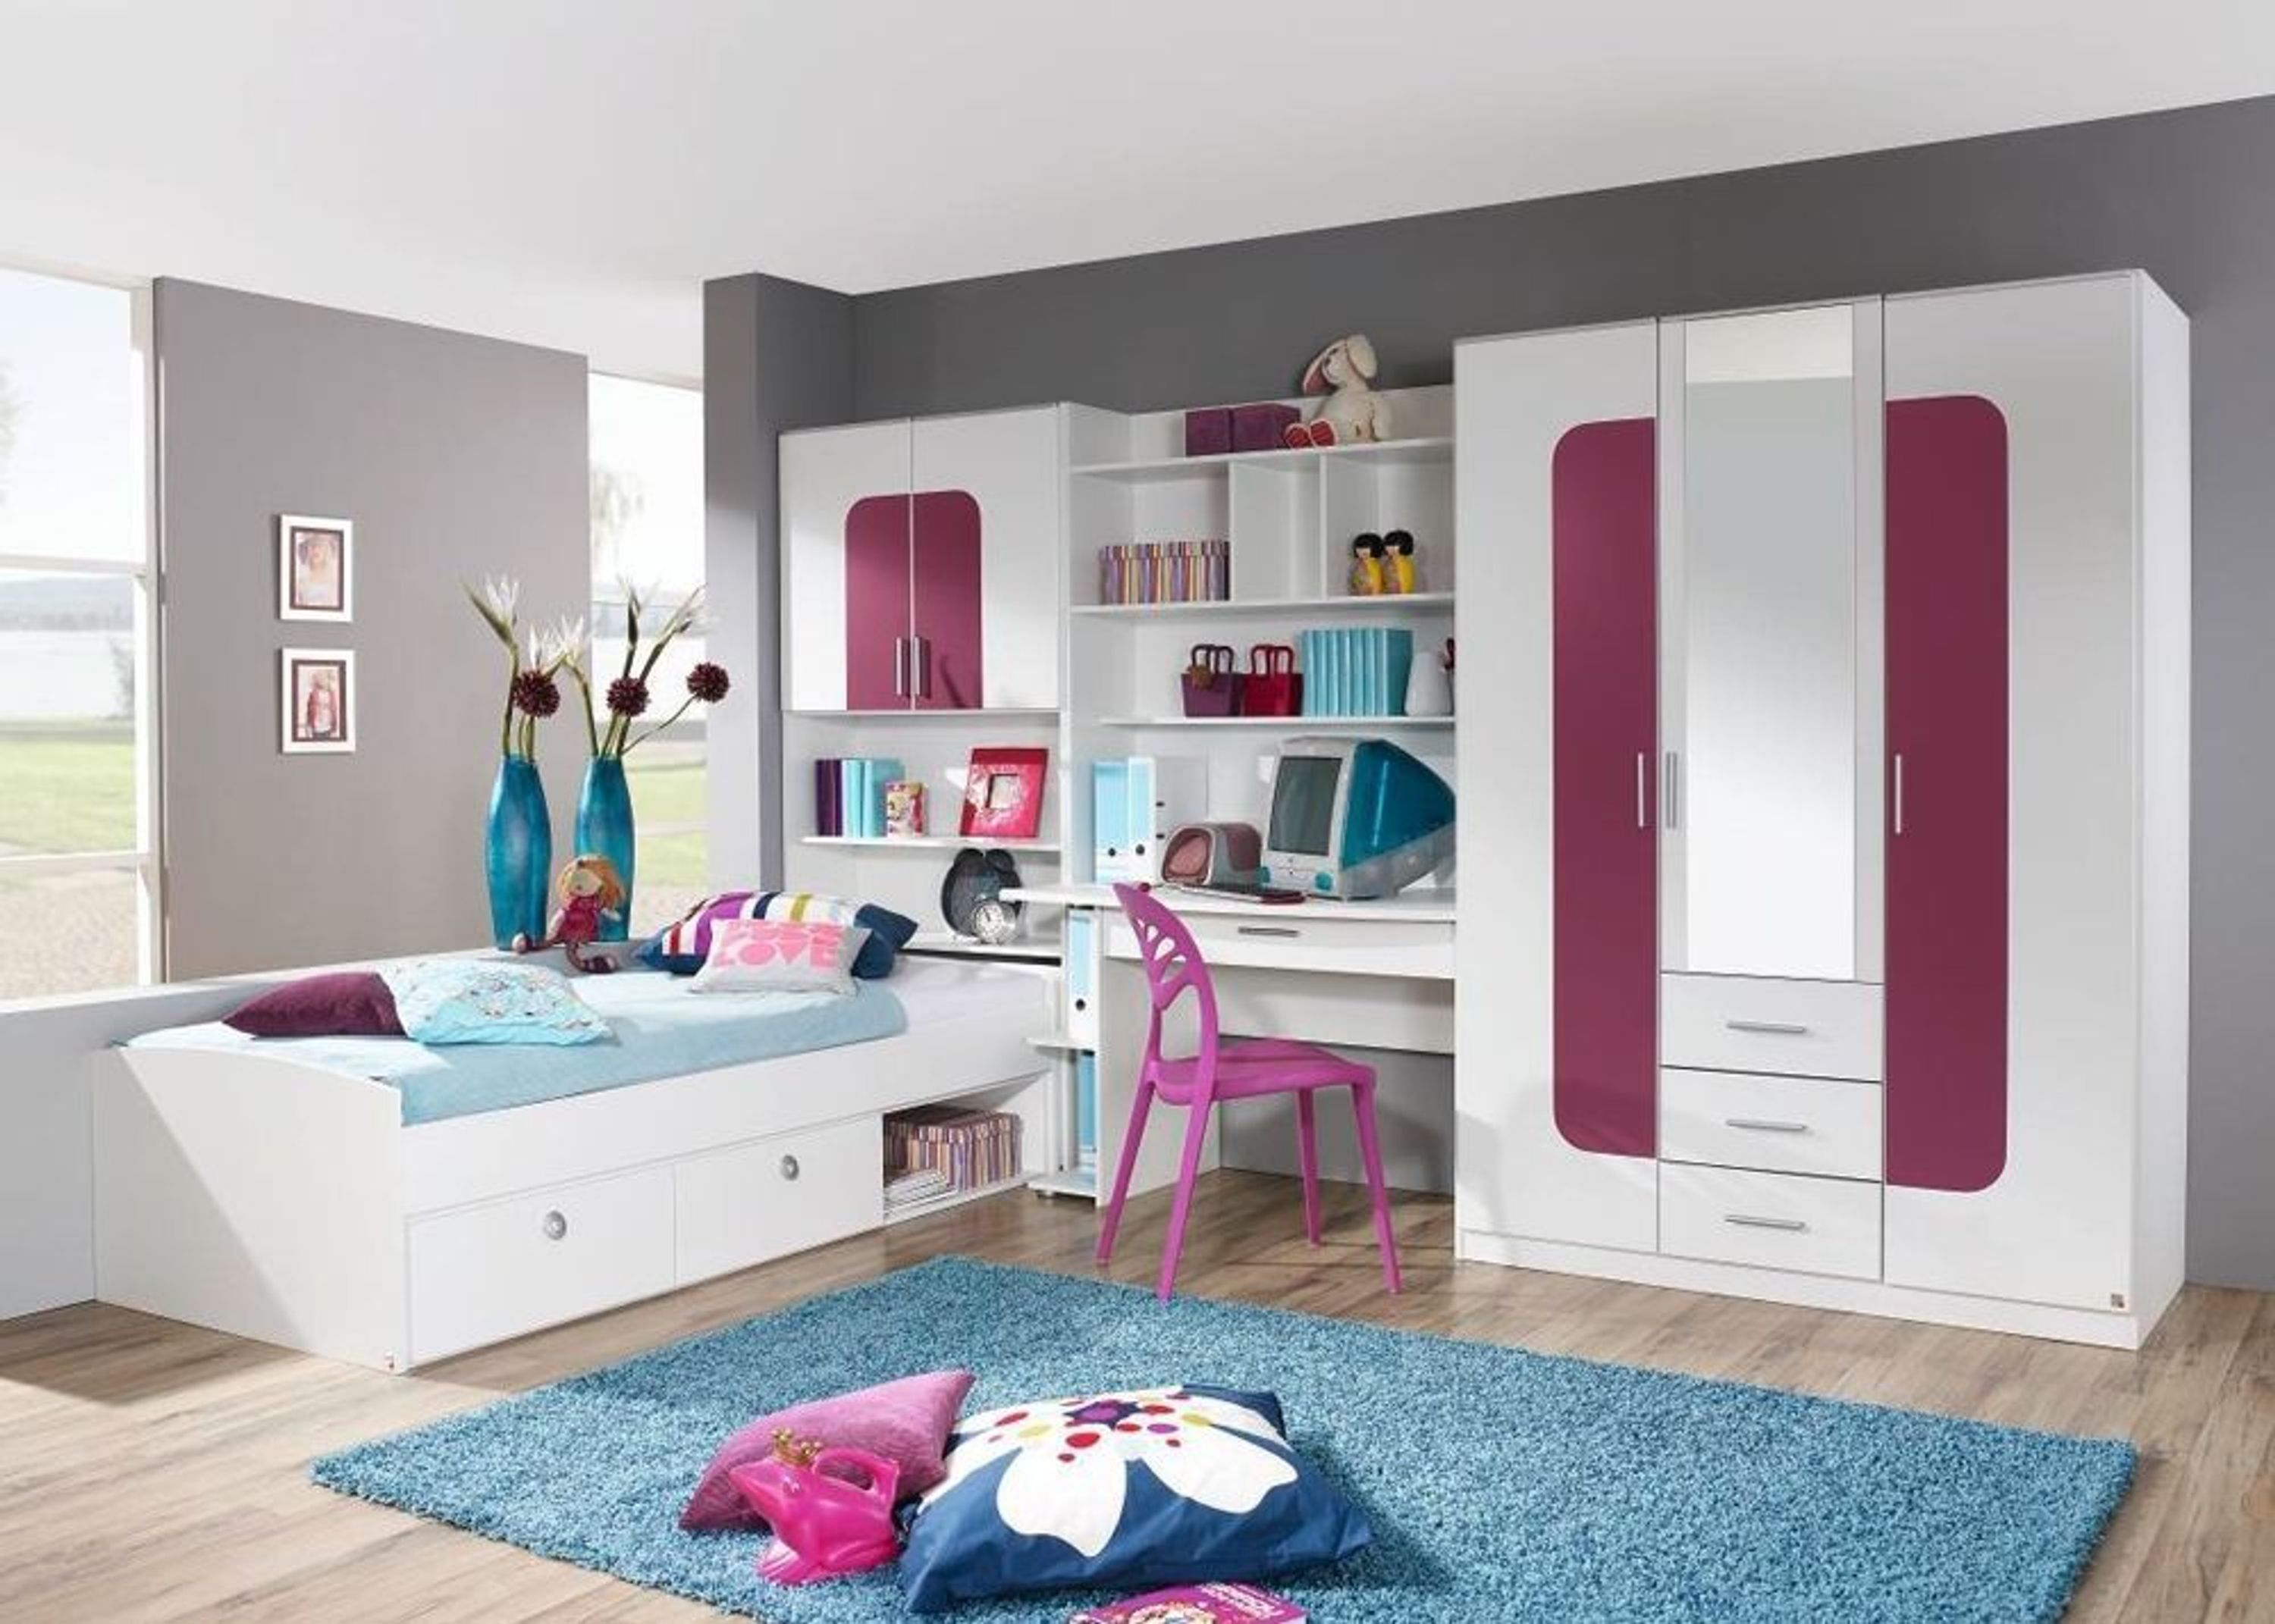 jugendzimmer komplett utah kinderzimmer wei lila aubergine 8449 kaufen bei. Black Bedroom Furniture Sets. Home Design Ideas